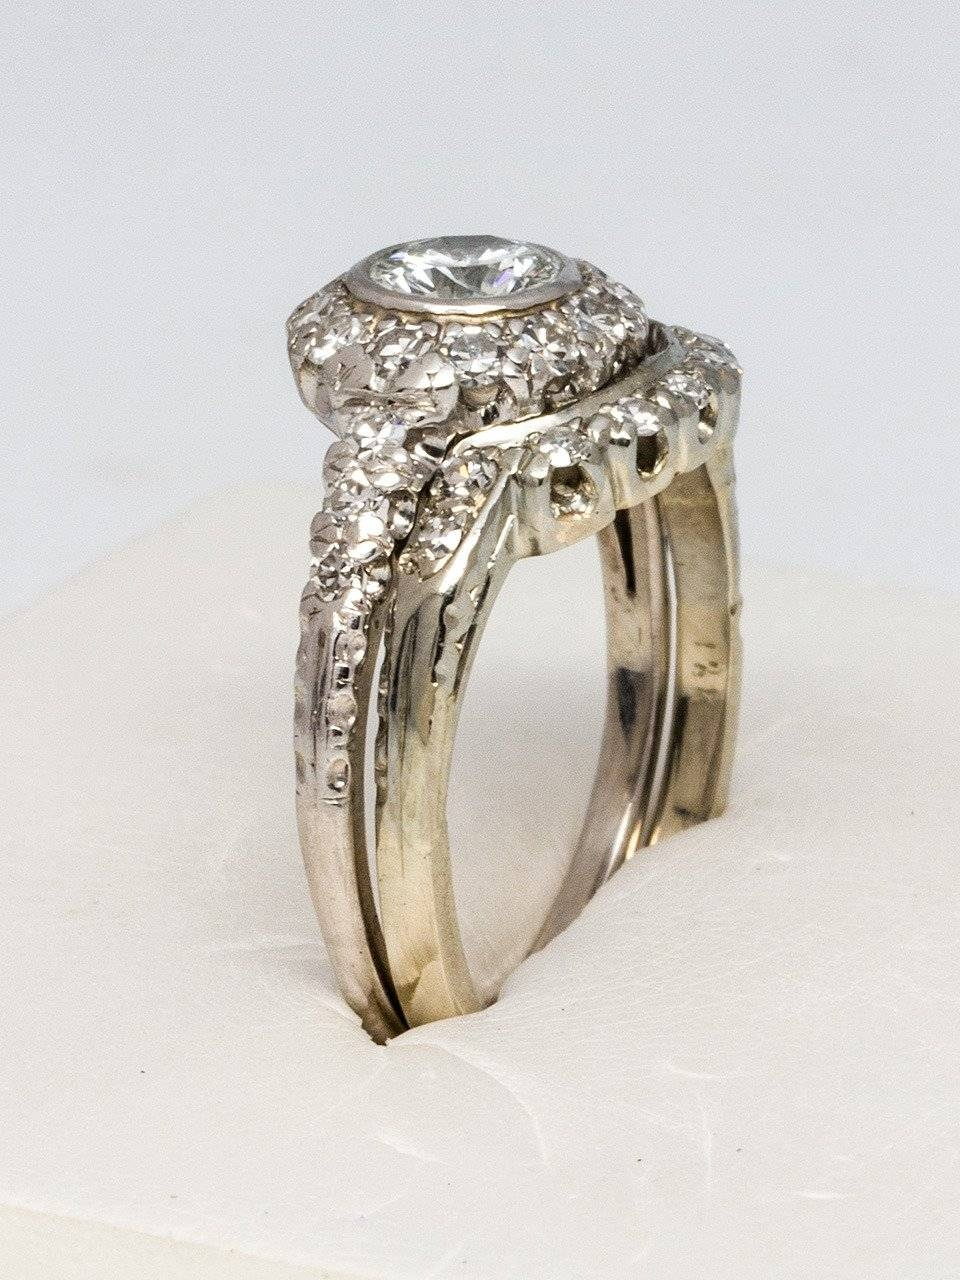 1960S Diamond Platinum Gold Wedding Ring Set For Sale At 1Stdibs Throughout Platinum And Gold Wedding Rings (View 3 of 15)